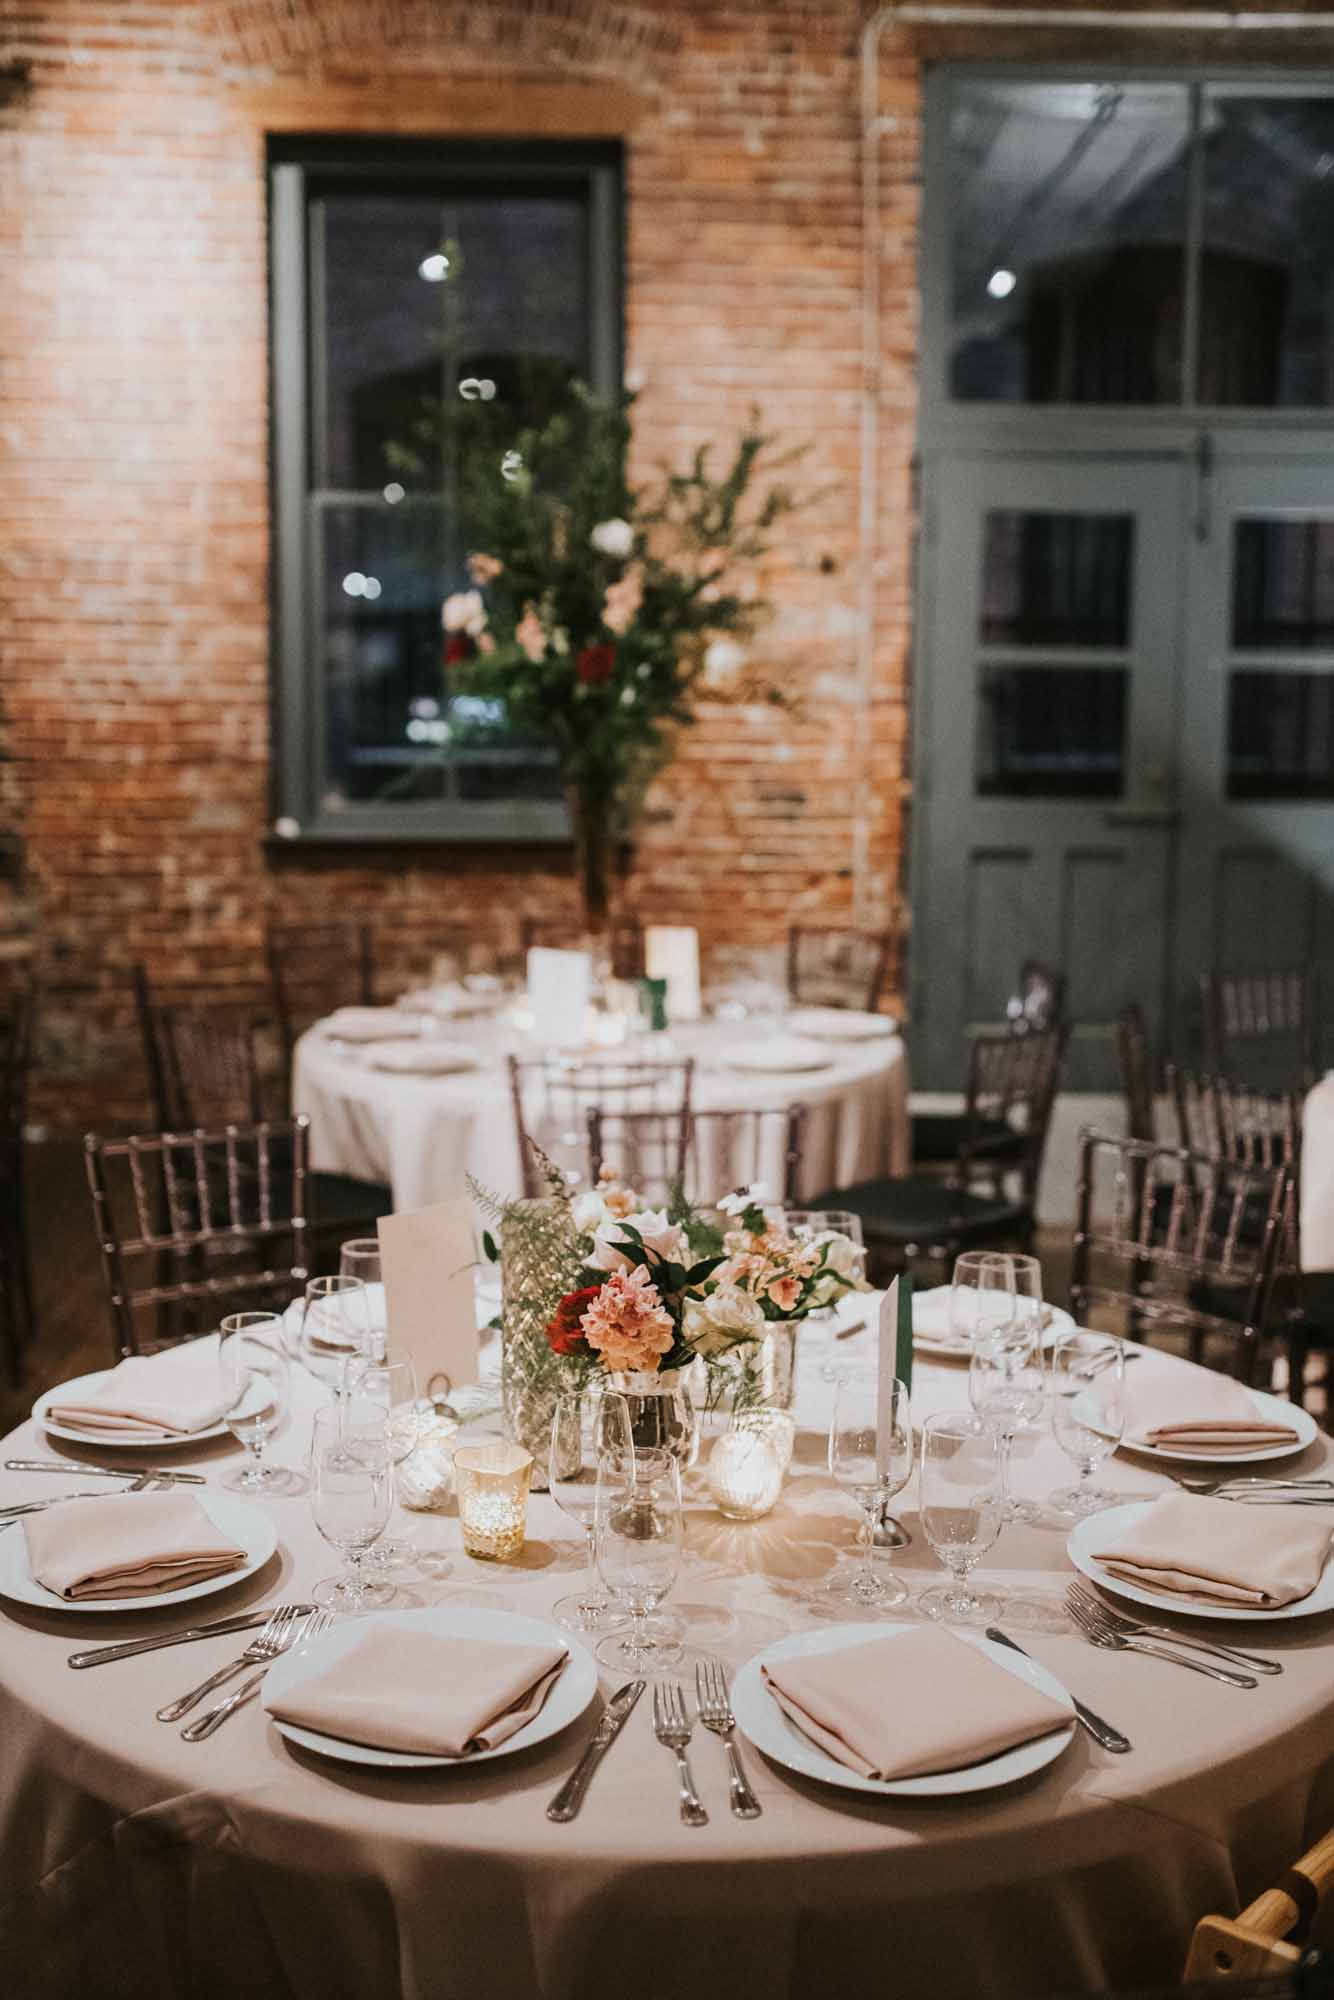 wedding reception tables in brick room